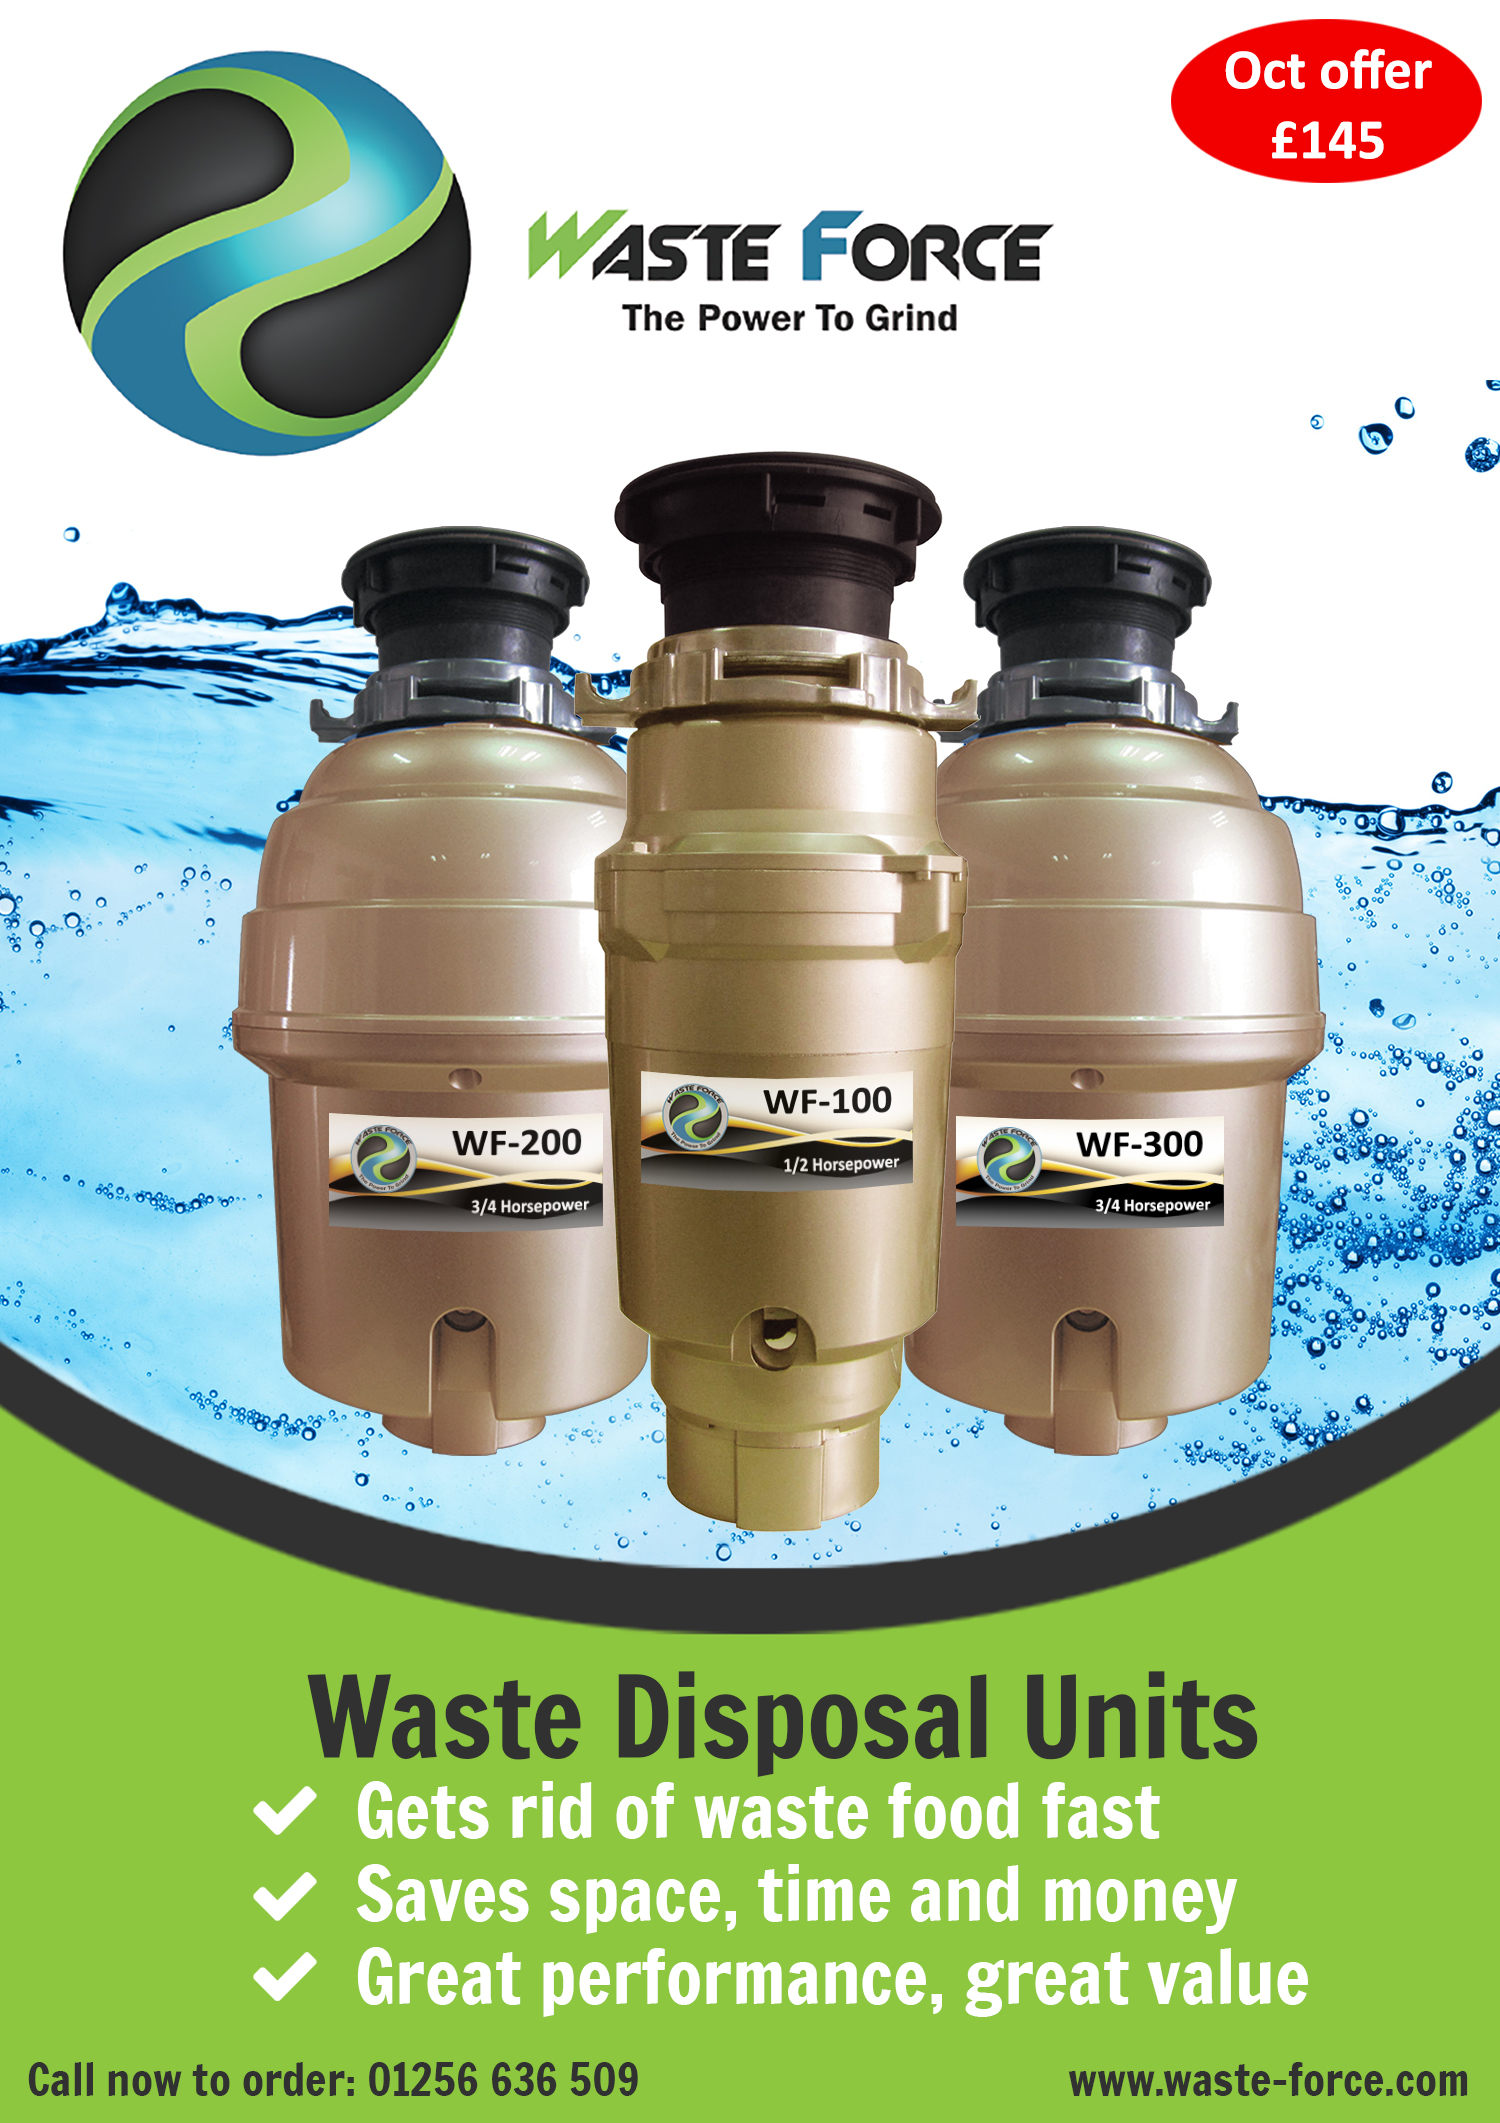 Waste Force Disposer Range Launched